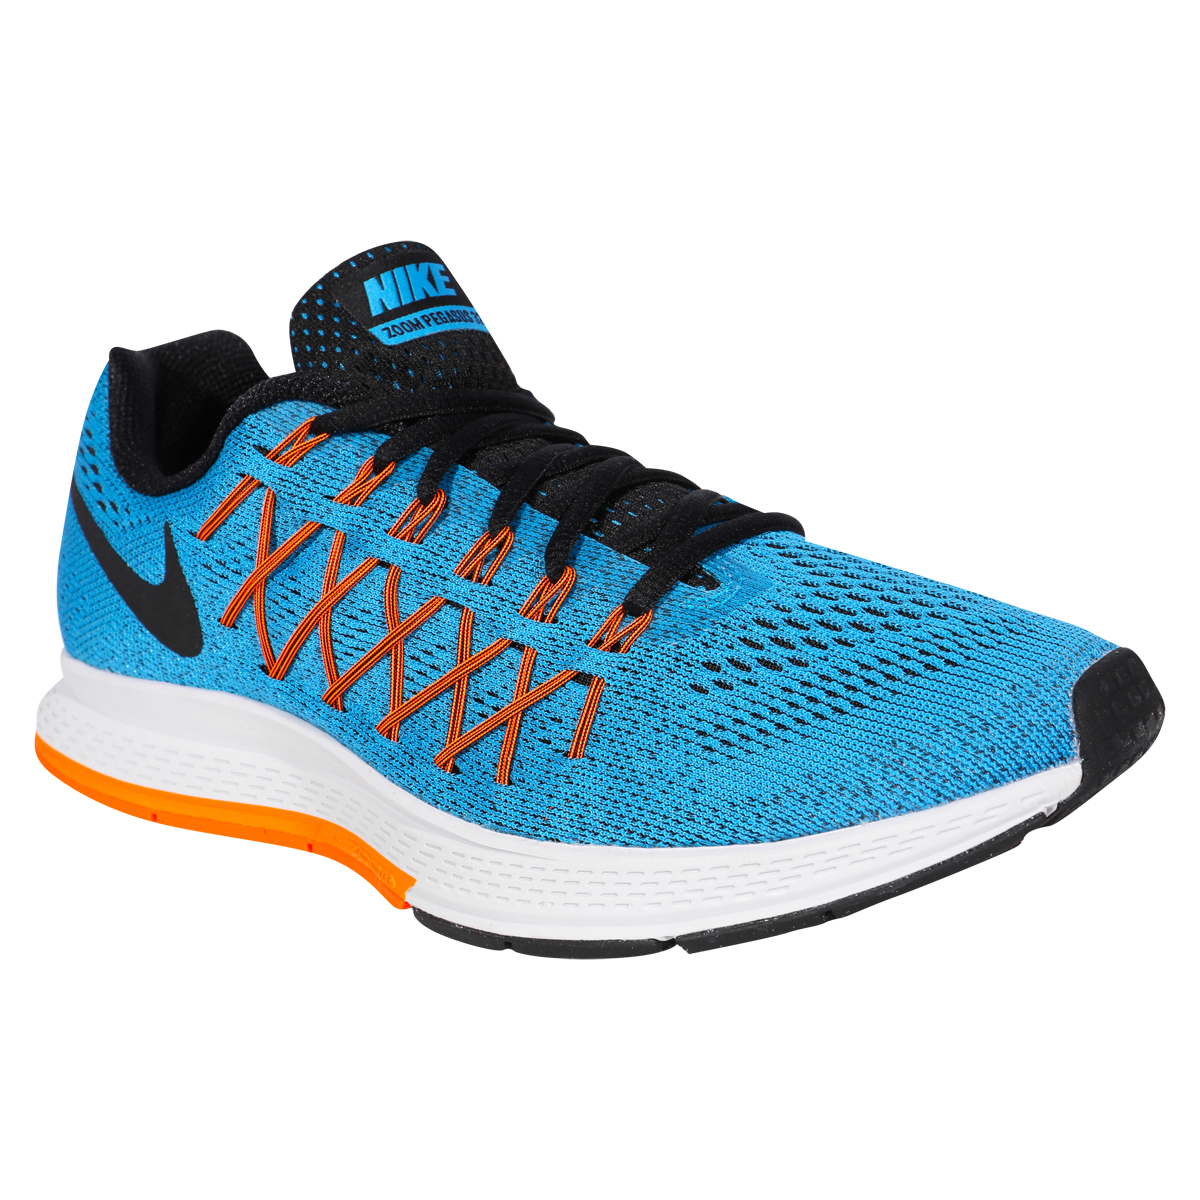 nike air zoom pegasus 32 men 39 s training shoes blue lagoon bright citrus black. Black Bedroom Furniture Sets. Home Design Ideas